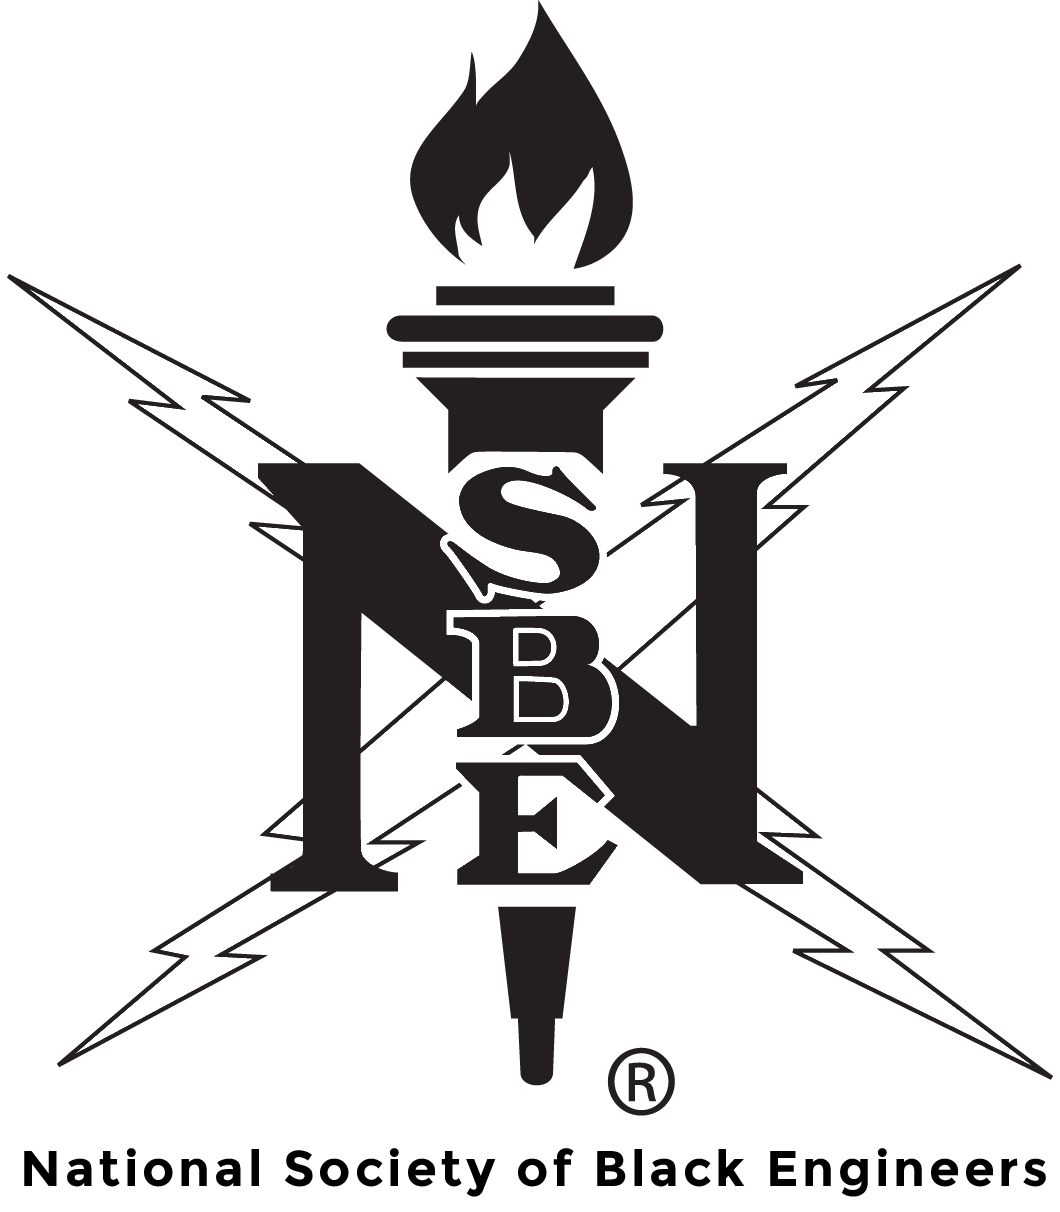 Engineer clipart black and white. Nsbe logo licensing national